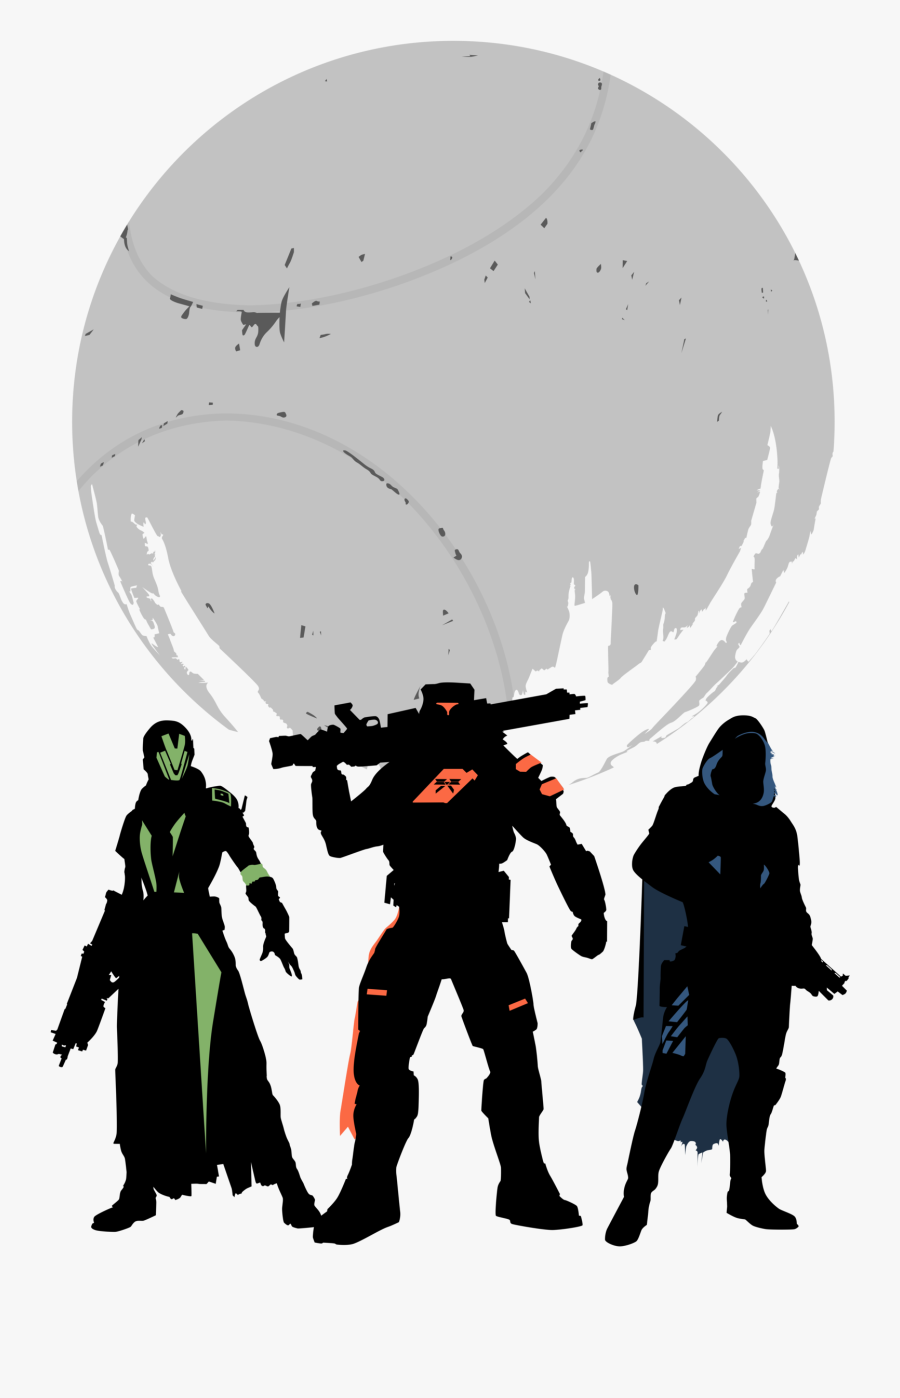 Destiny Vector Clip Art Free - Destiny 2 Transparent Background, Transparent Clipart